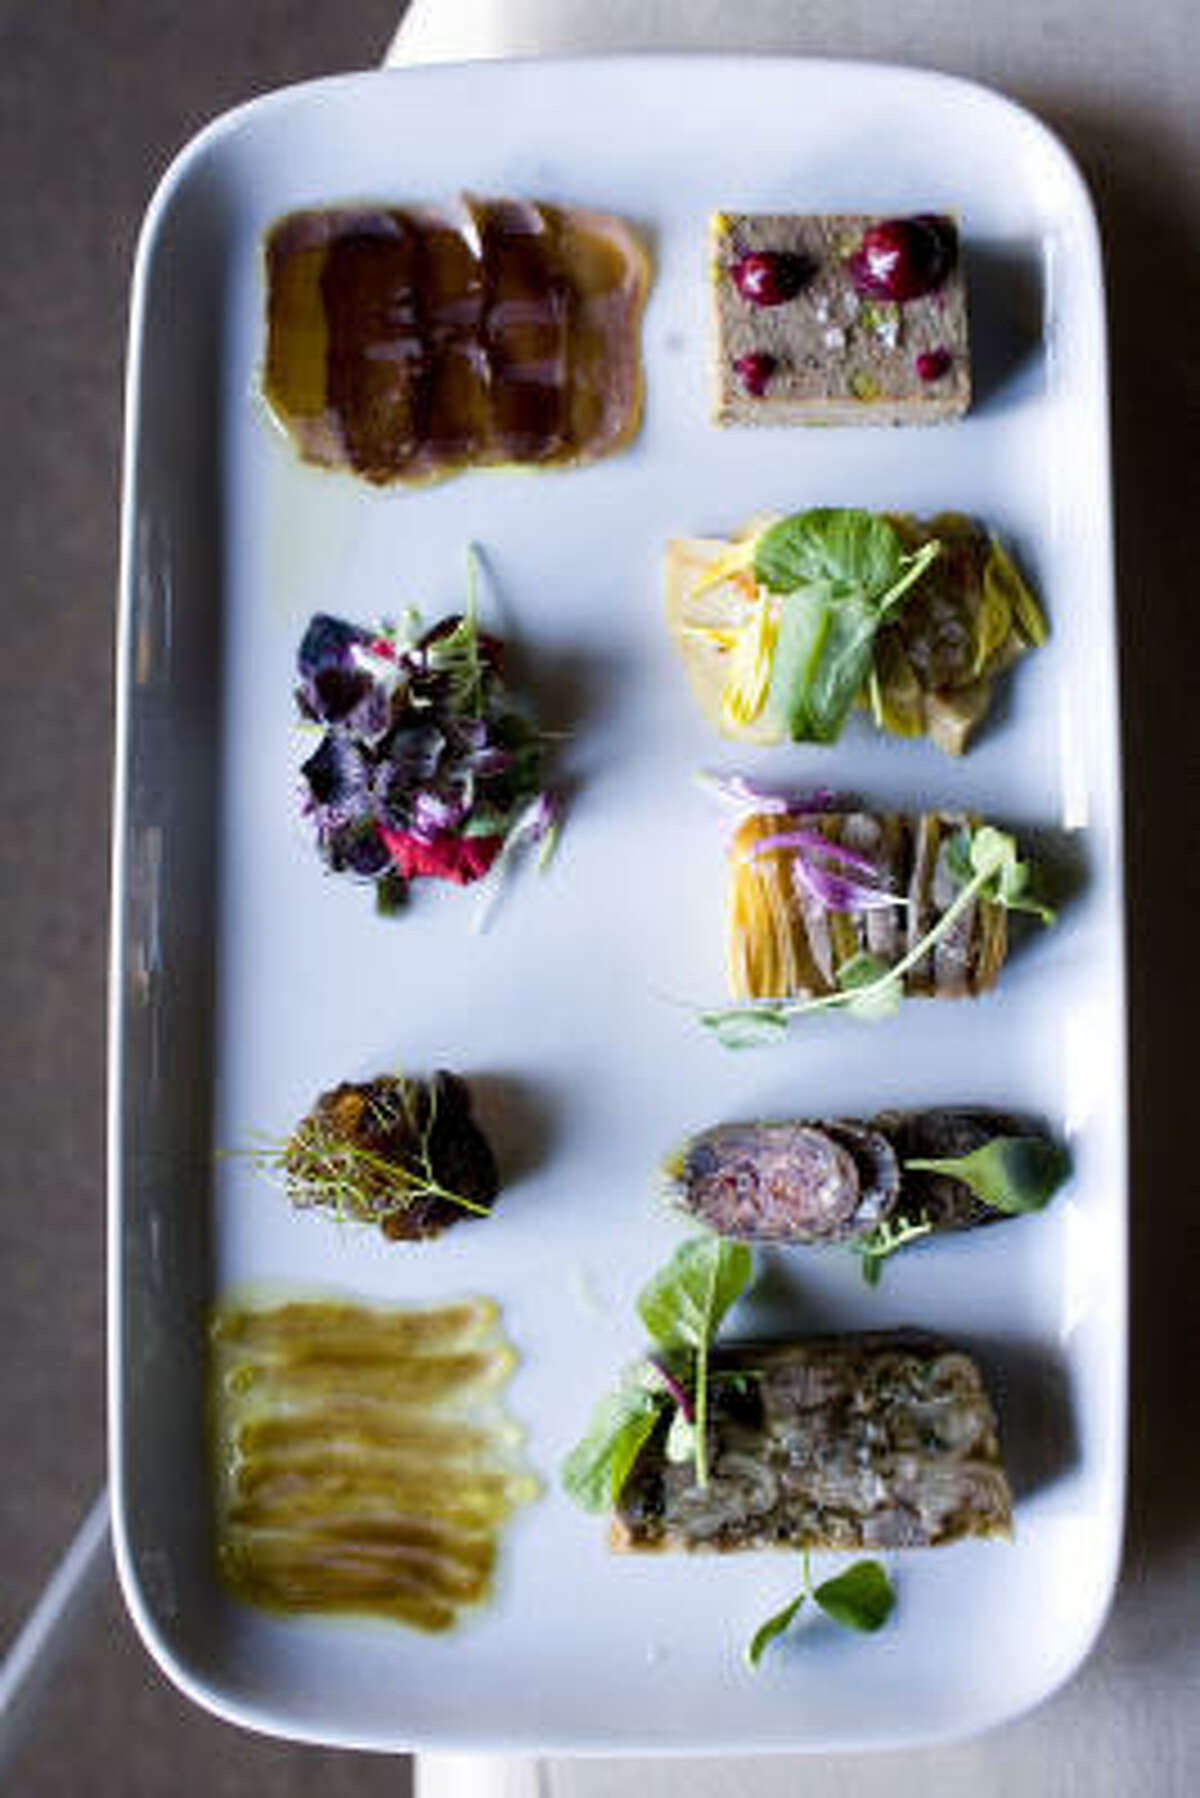 A charcuterie plate at Rainbow Lodge contains assorted tastes gathered by chef Randy Rucker.